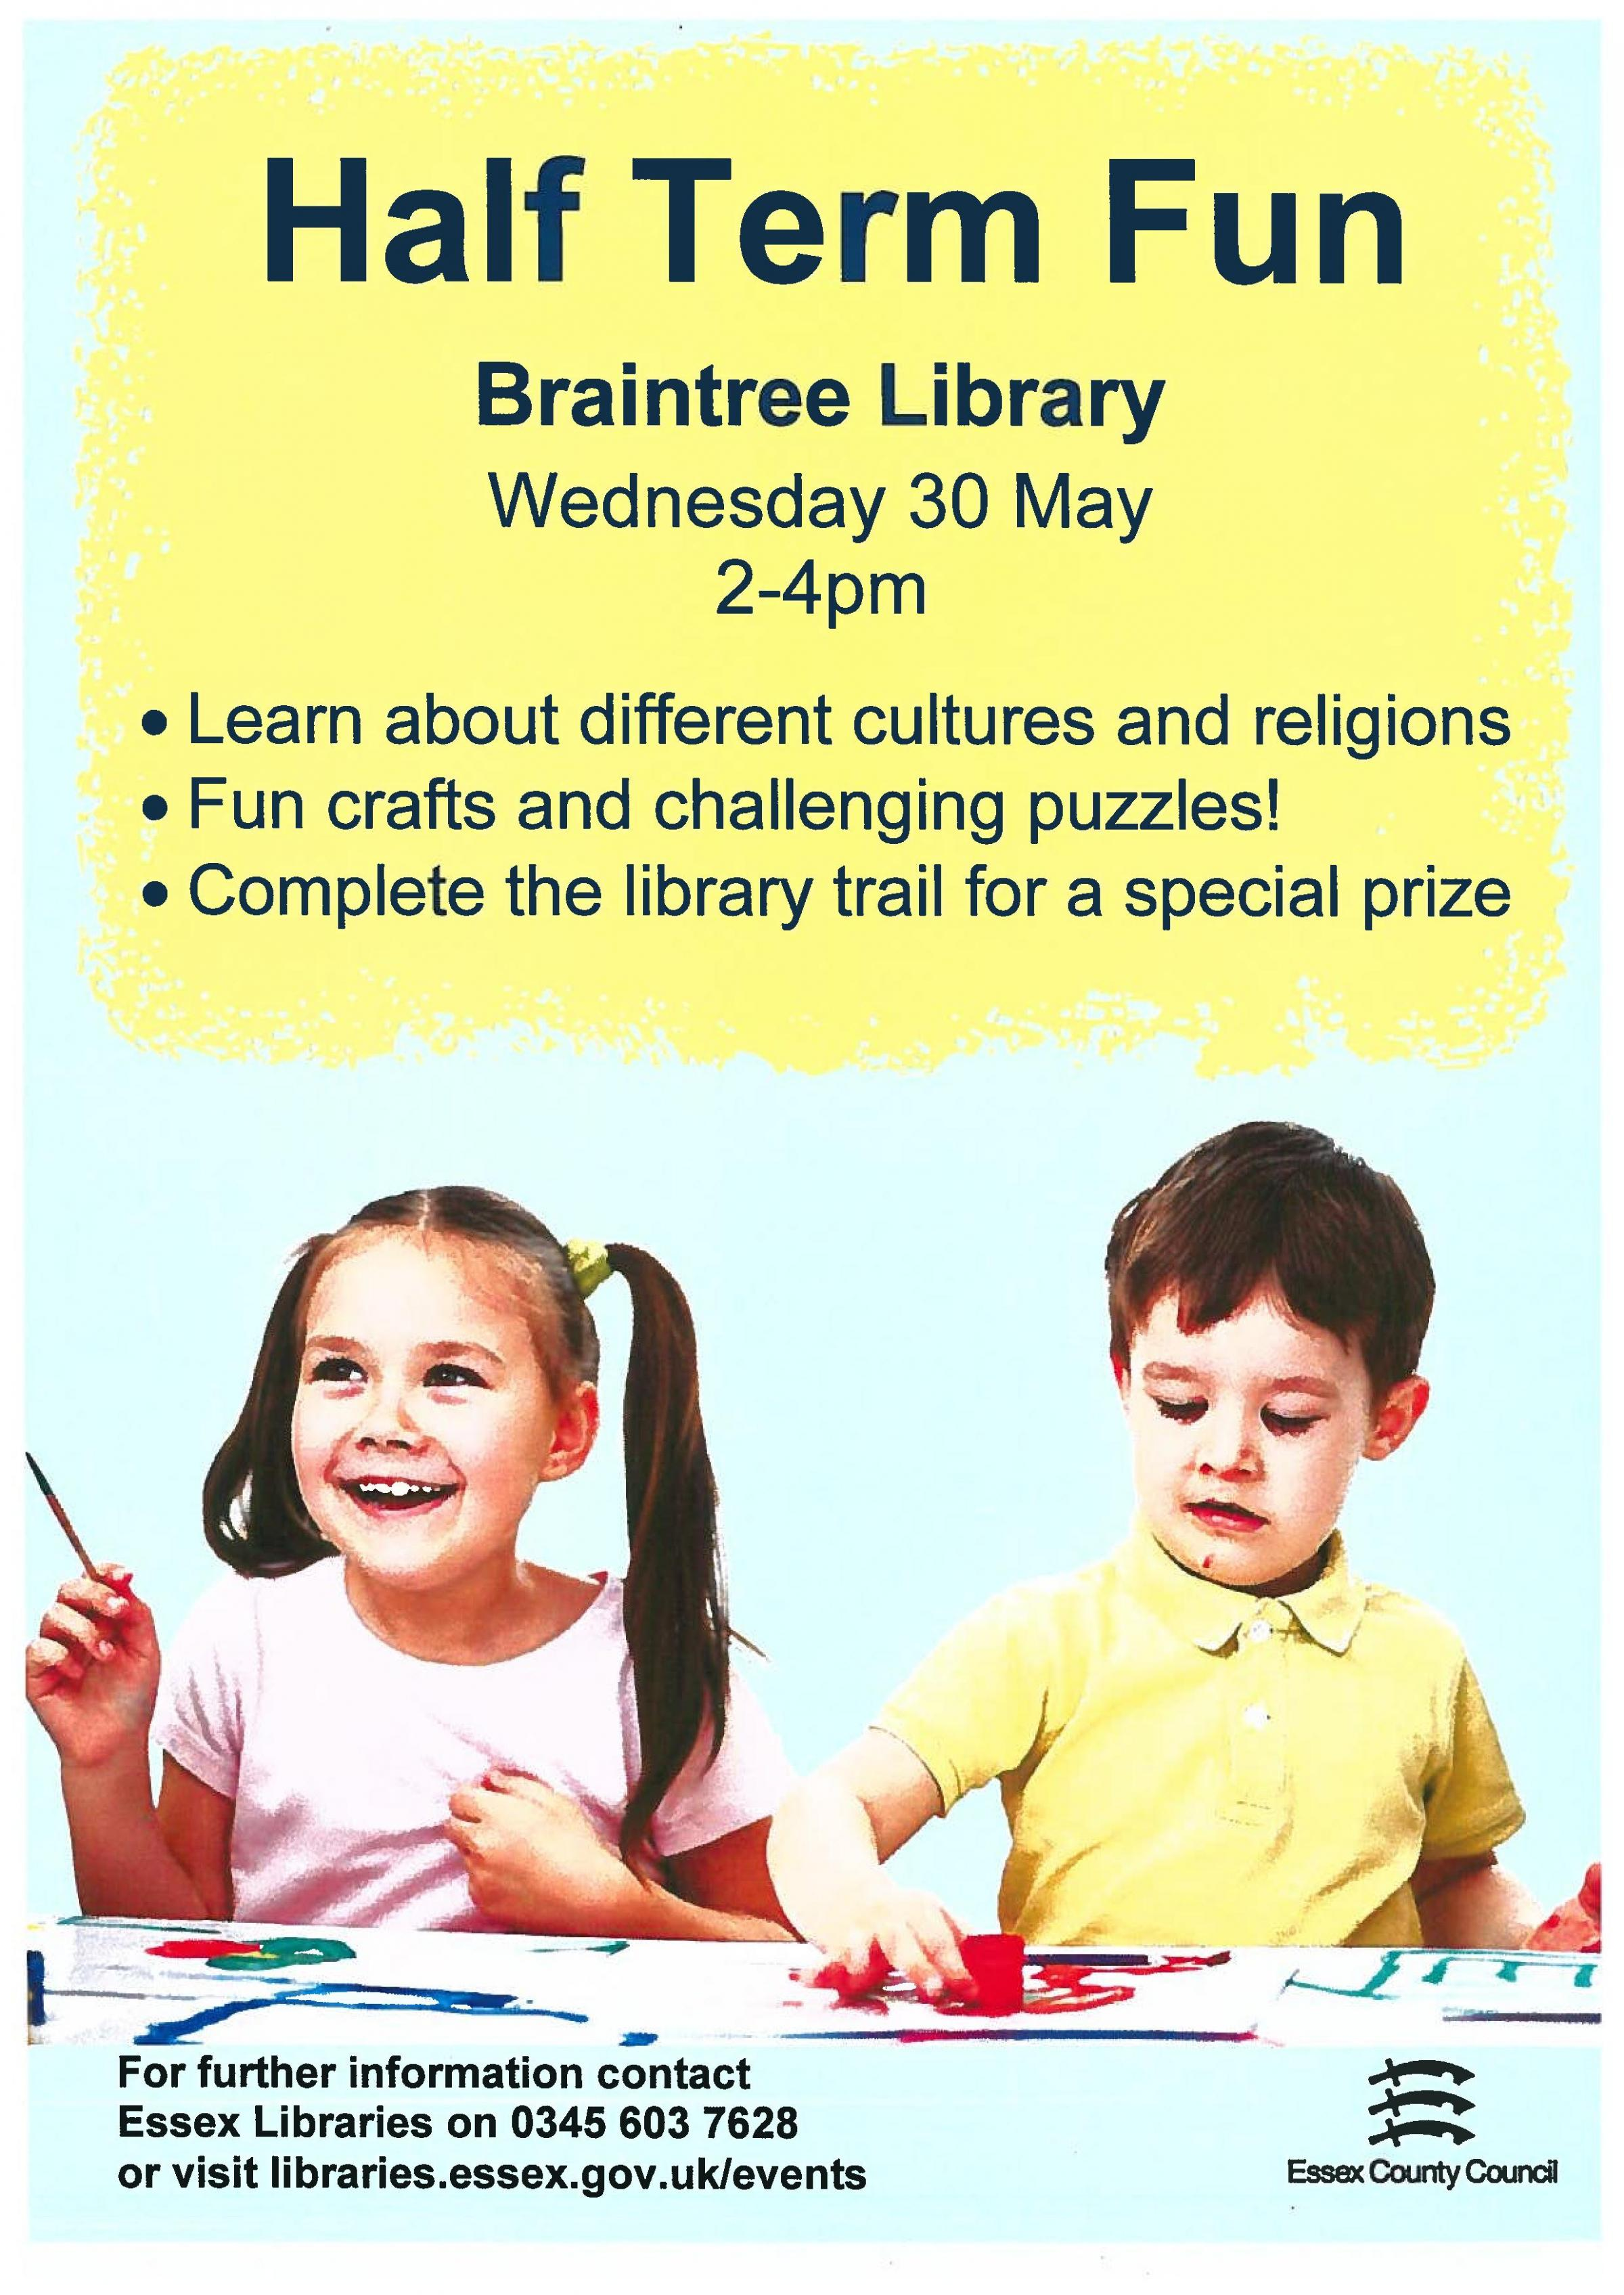 Half Term Fun at Braintree Library